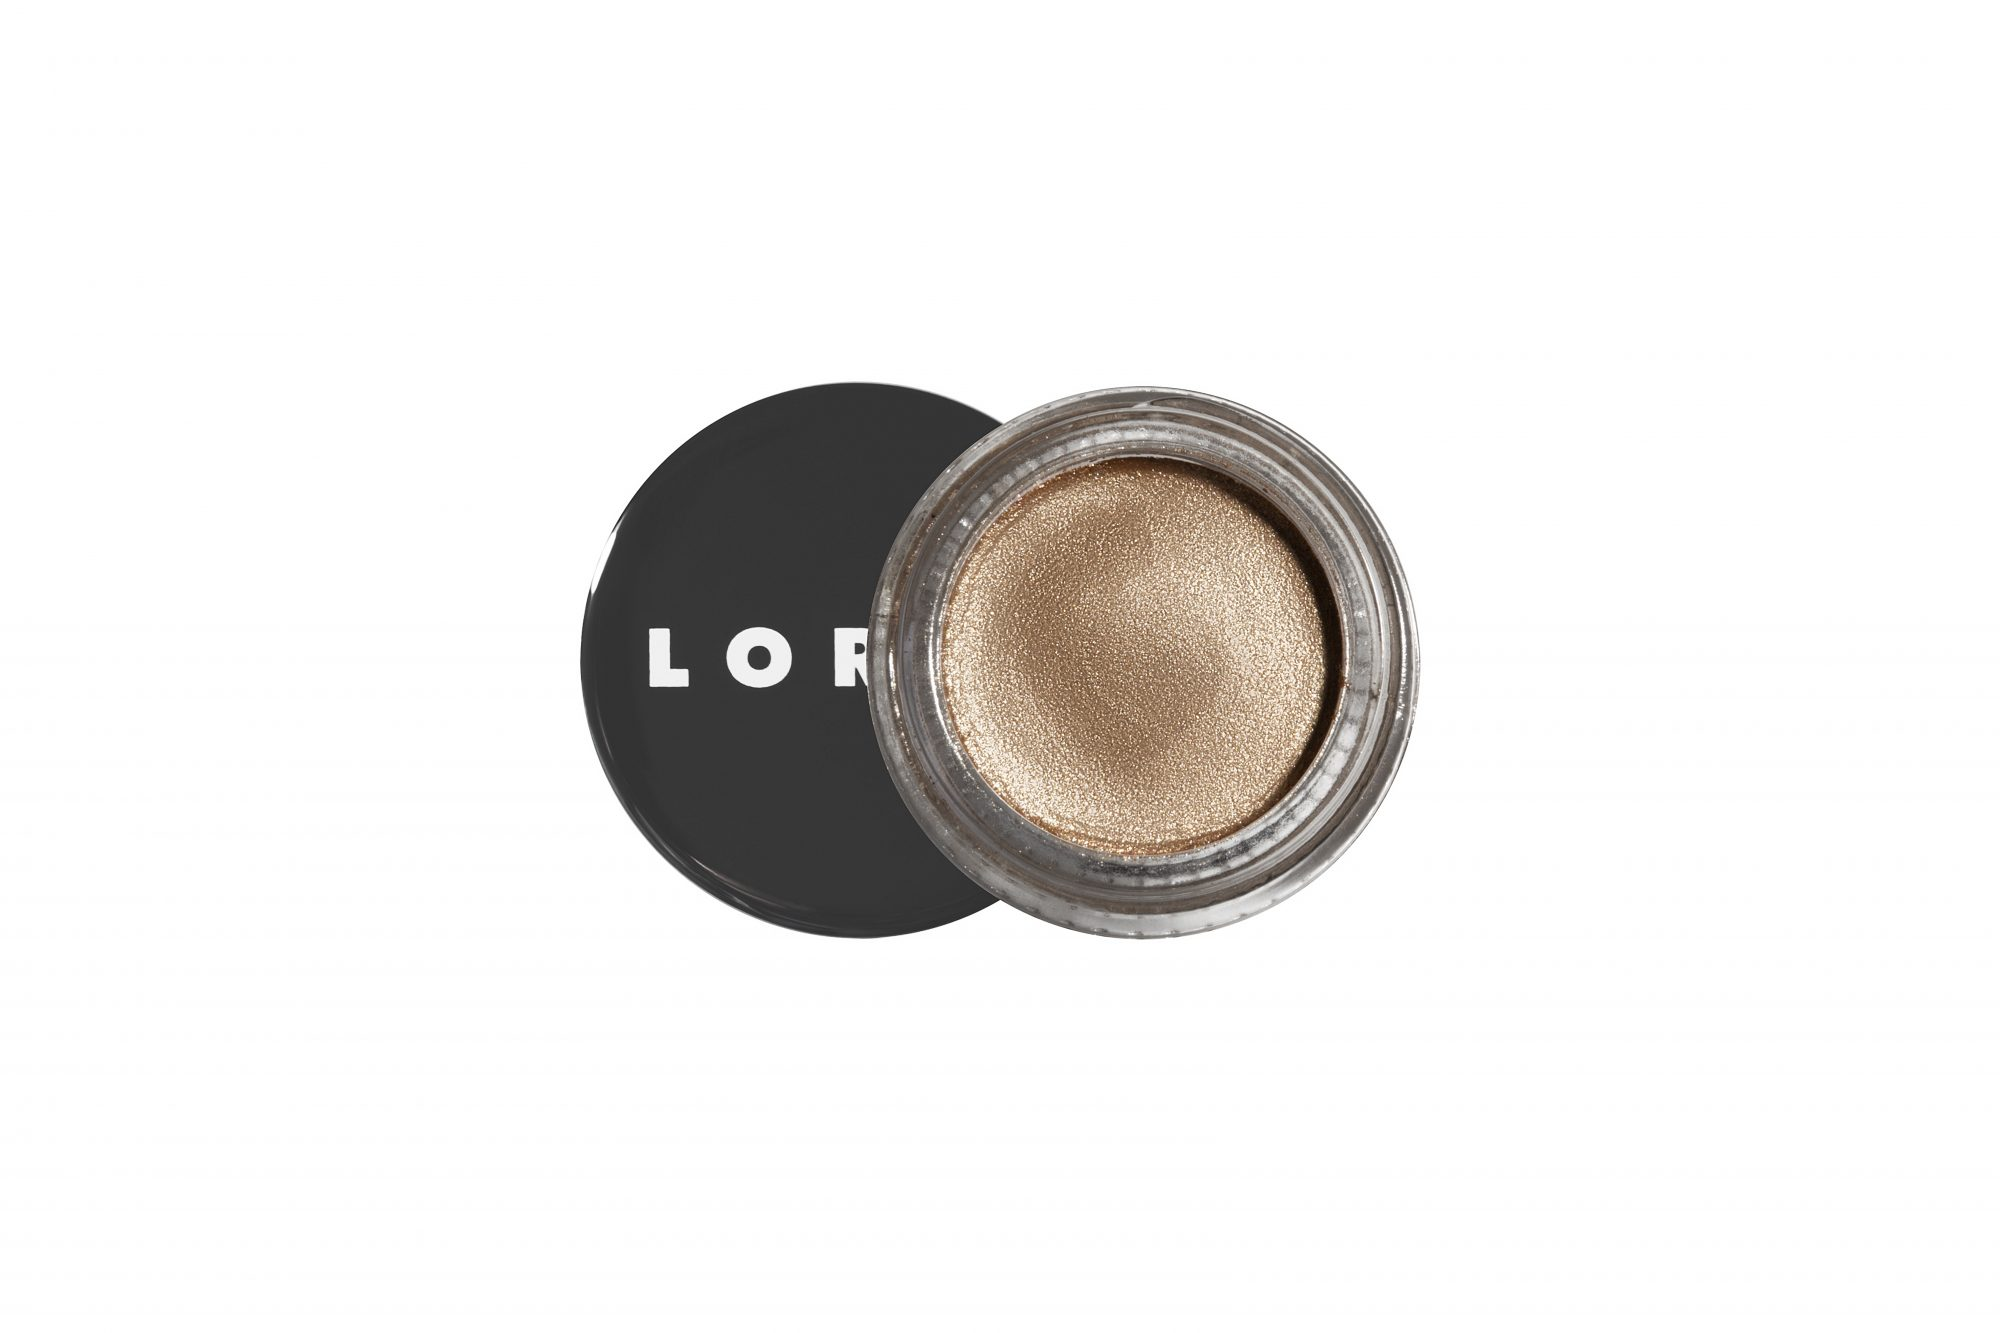 If diamonds are a girl's best friend, consider this gleaming eye shadow, which is infused with, yes, real diamonds, your beauty BFF4L. The gem is quadrupled-milled for the blingiest effect, ever.                             Buy It! Lorac Luxe Diamond Créme Eye Shadow, $22; ulta.com